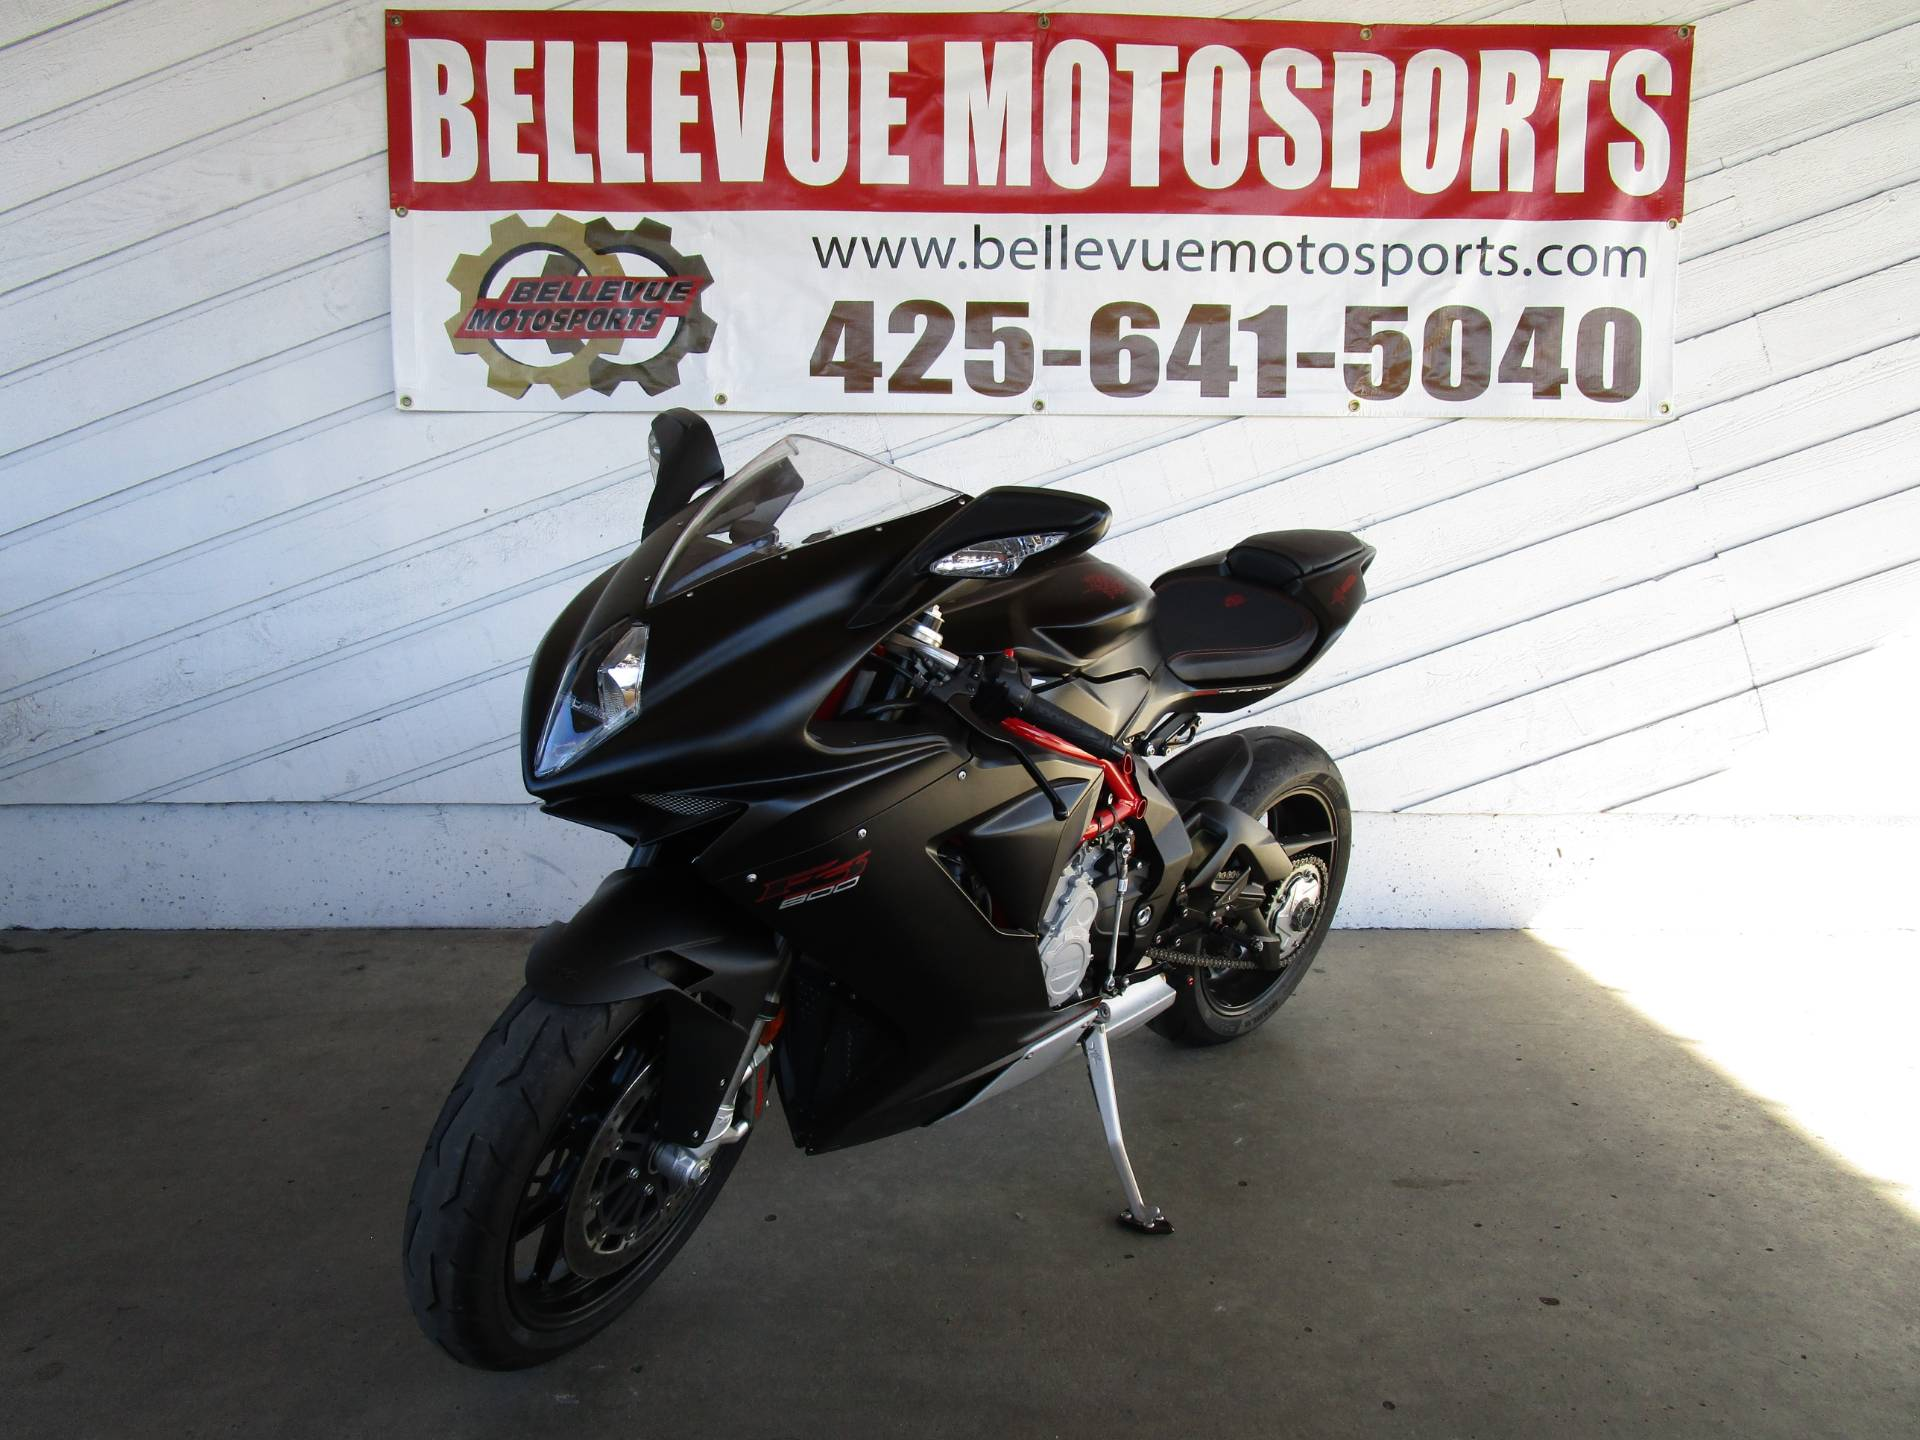 2014 MV Agusta F3 800 EAS in Bellevue, Washington